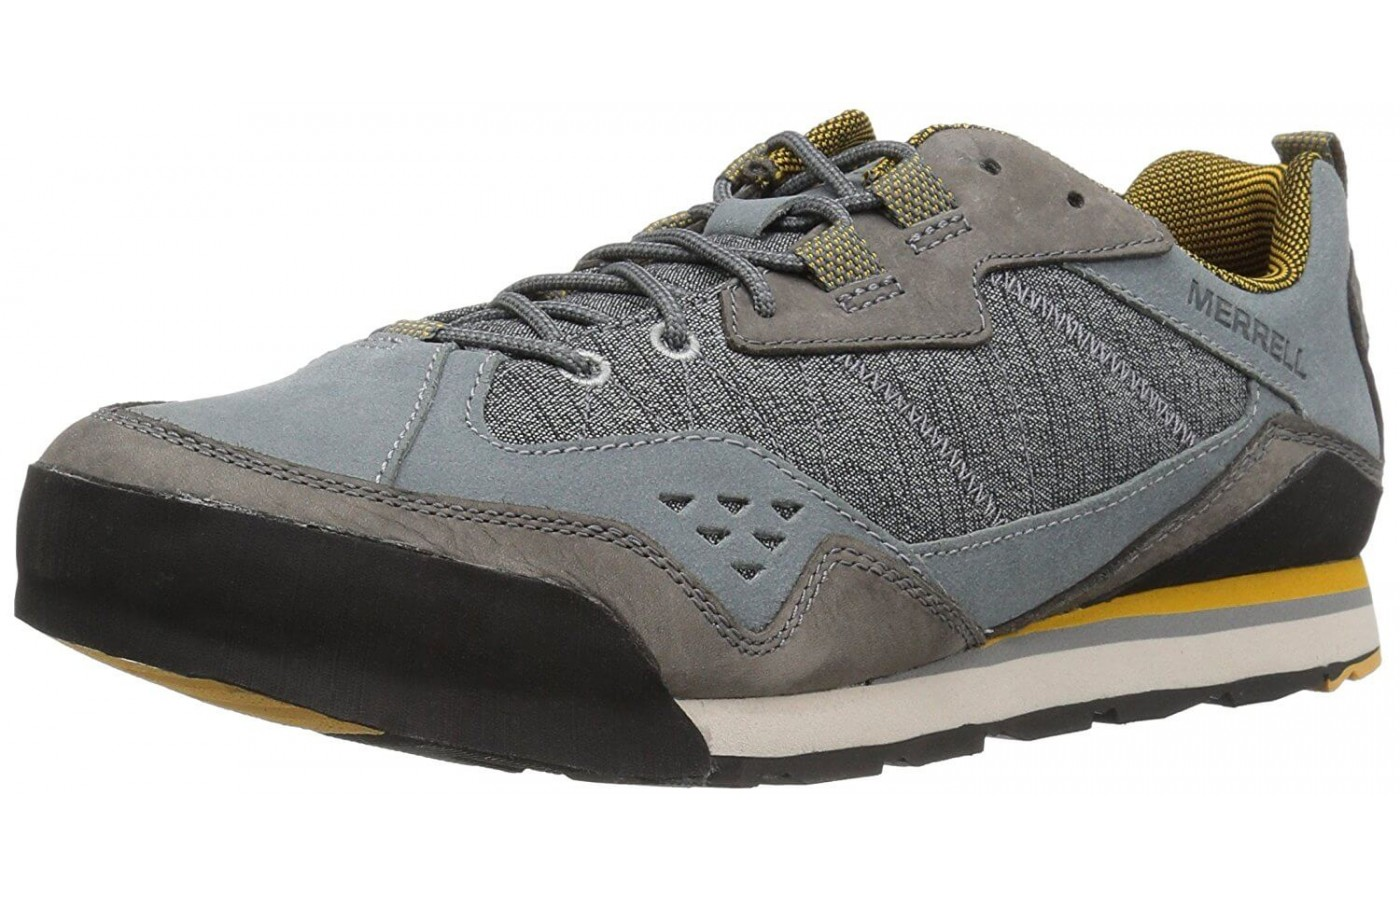 The Merrell Burnt Rock features Air Cushioning in its heel